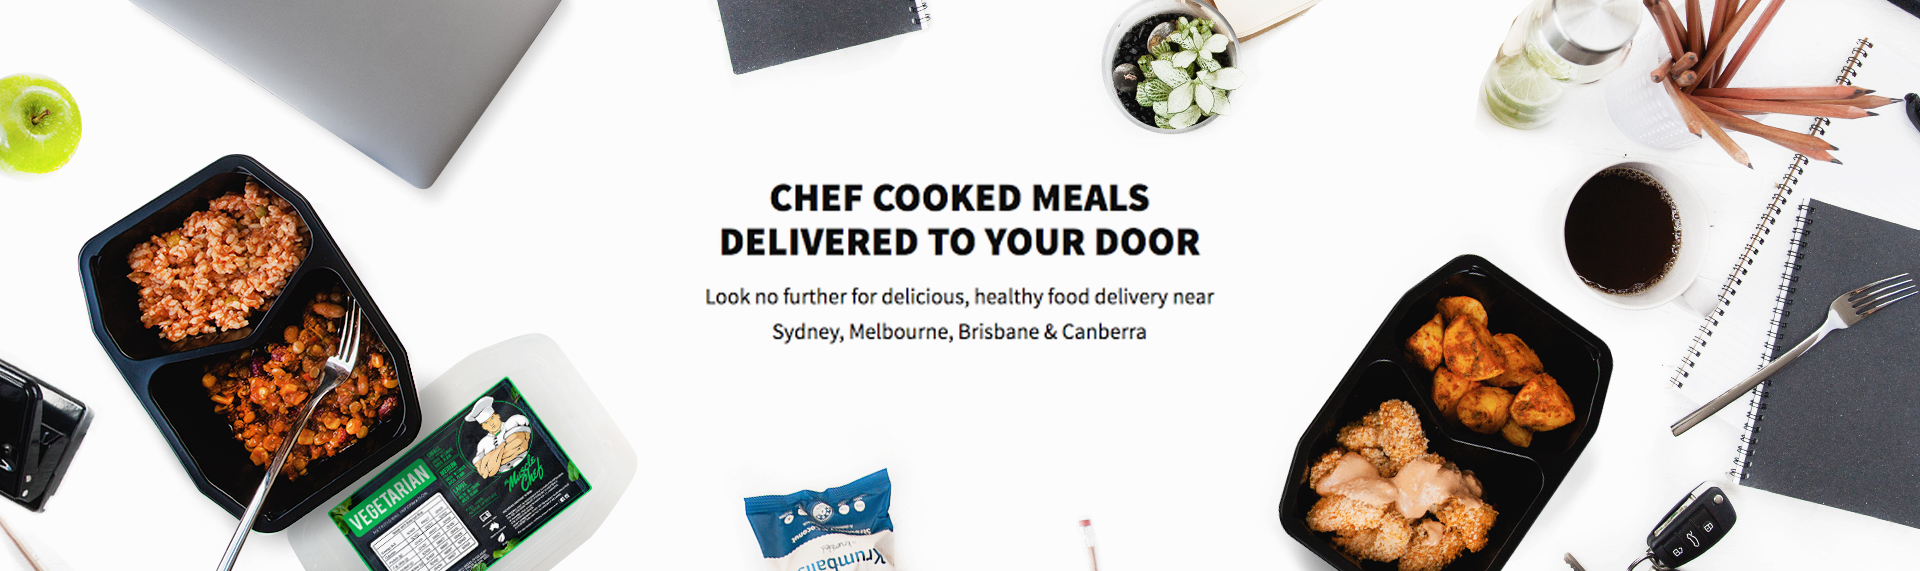 Weight loss meals plan delivered sydney diet meals delivery forumfinder Image collections